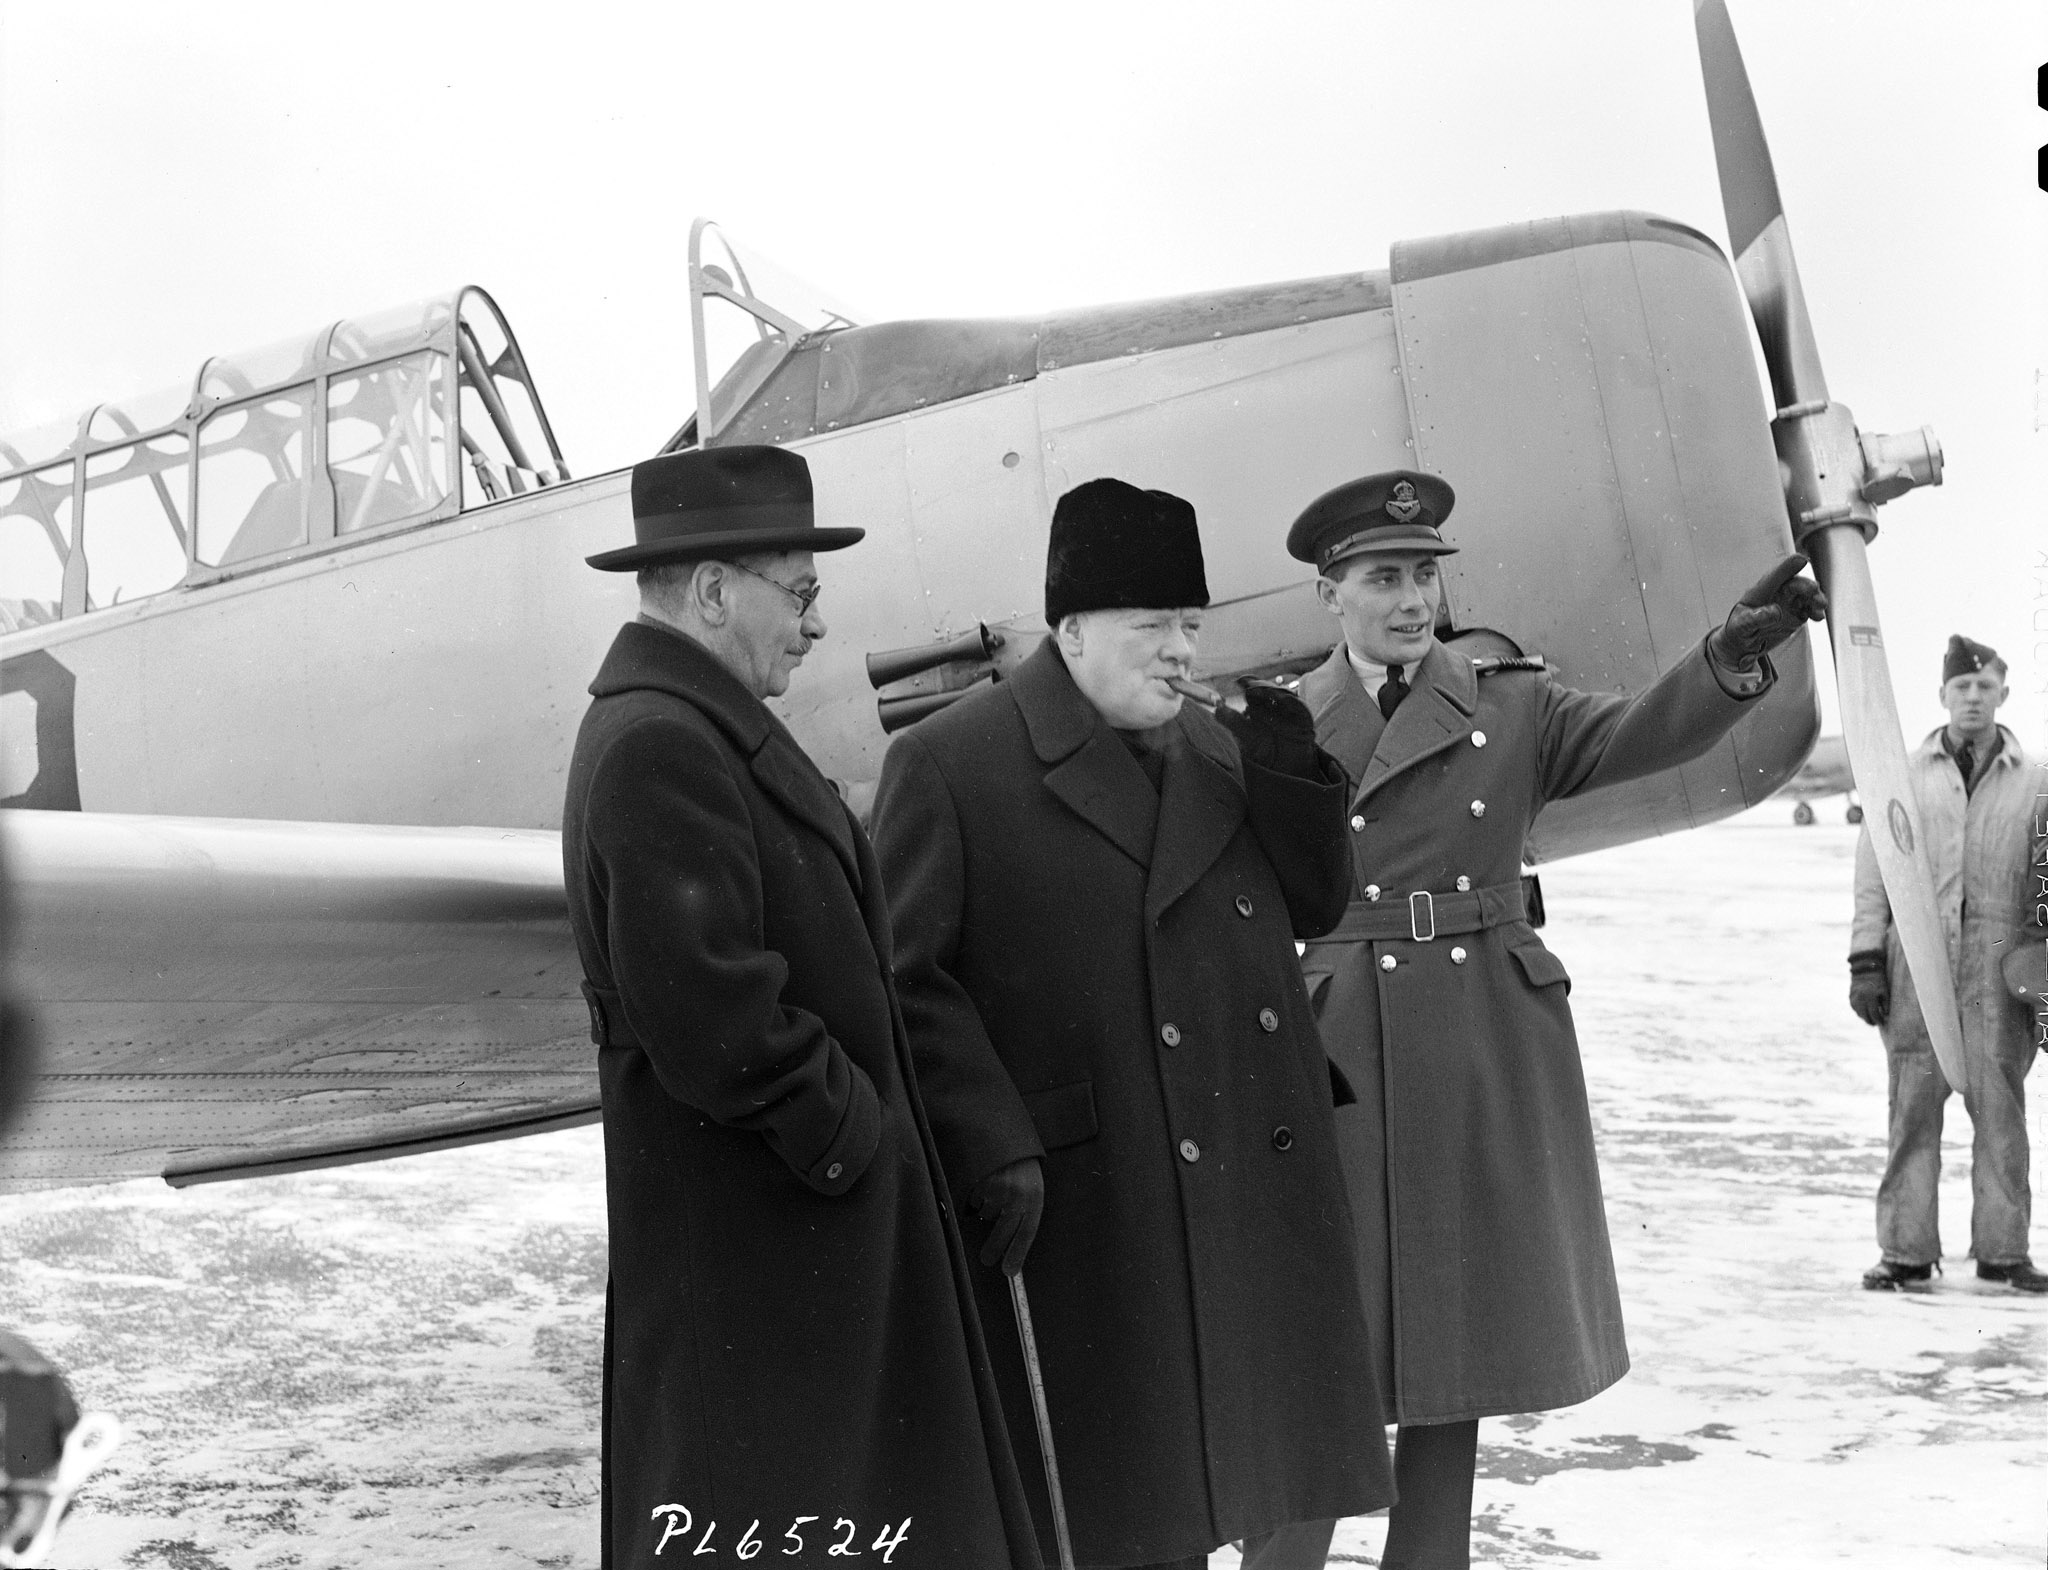 British Prime Minister Winston Churchill (centre) visits the British Commonwealth Air Training Plan school at RCAF Uplands, Ontario, in December 1941 with Canadian Air Minister C.G. Power (left) and Wing Commander W.R. MacBrien. PHOTO: DND Archives